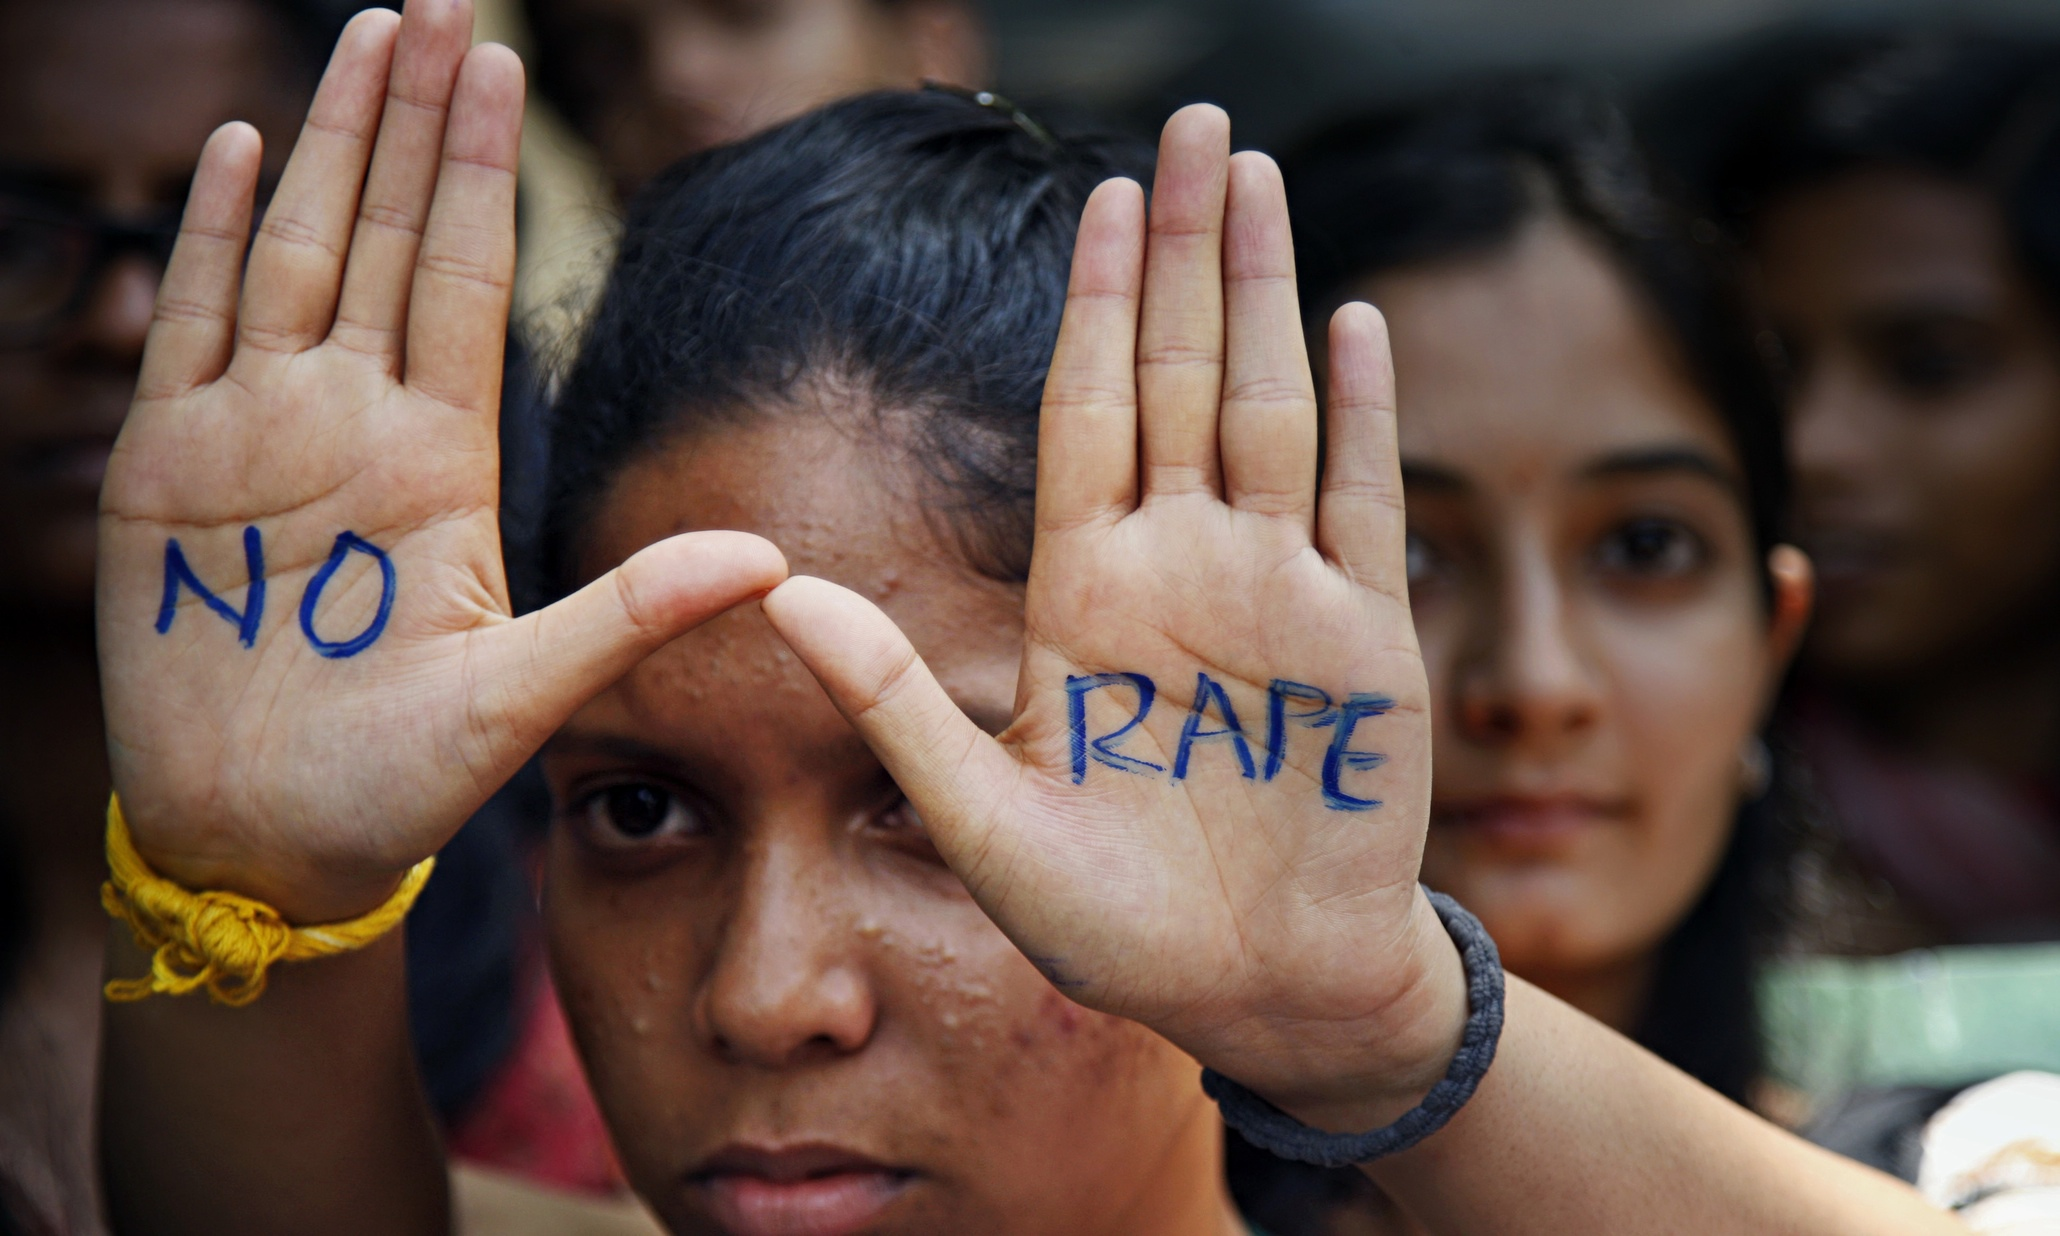 Indian women found their voice after the Delhi rape. Could